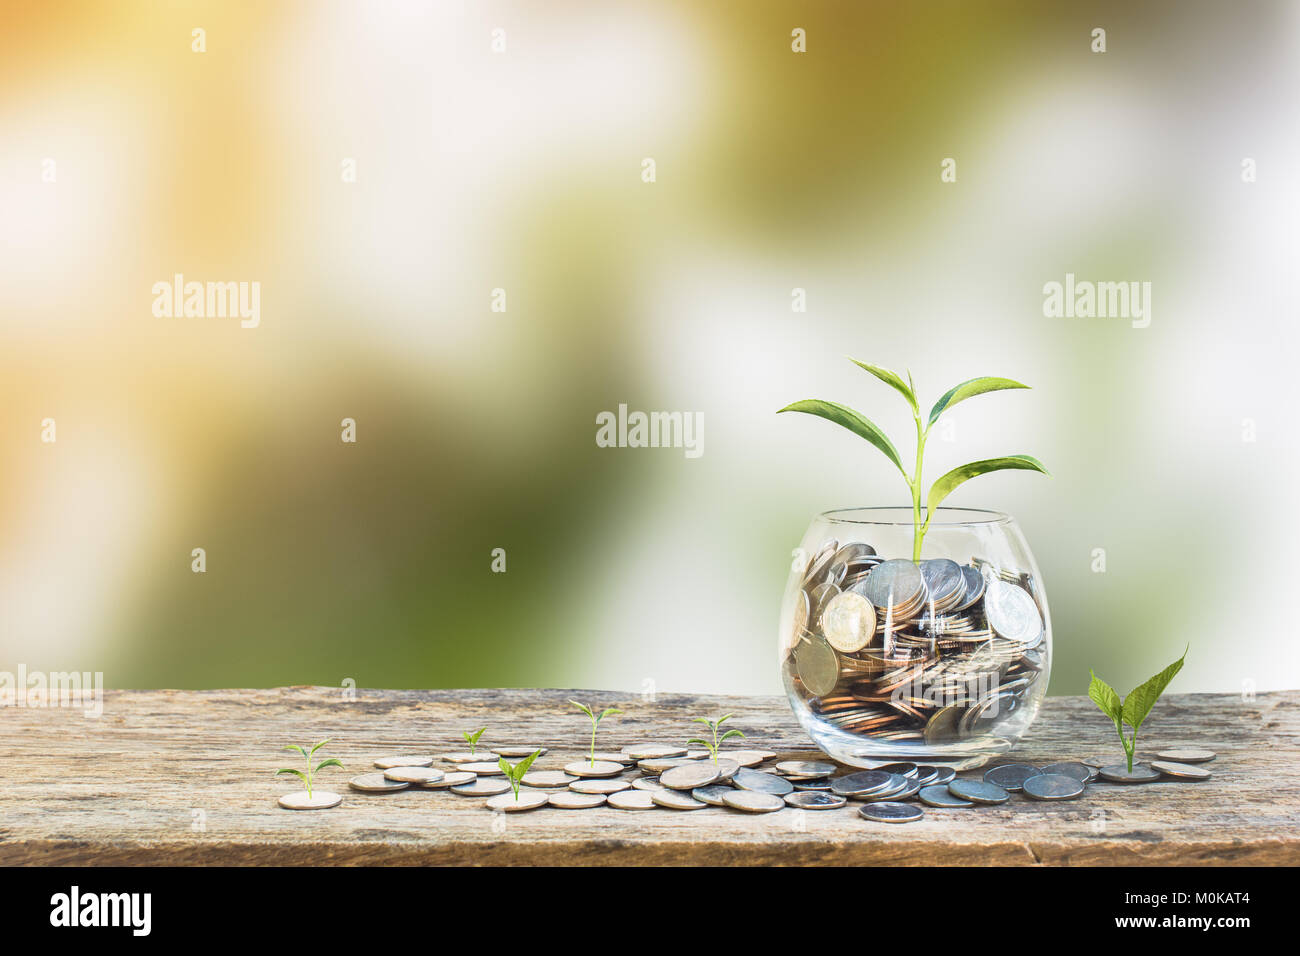 Investment concept. Growth plant on coins in clear glass bottle on wooden table with green blurred background and - Stock Image